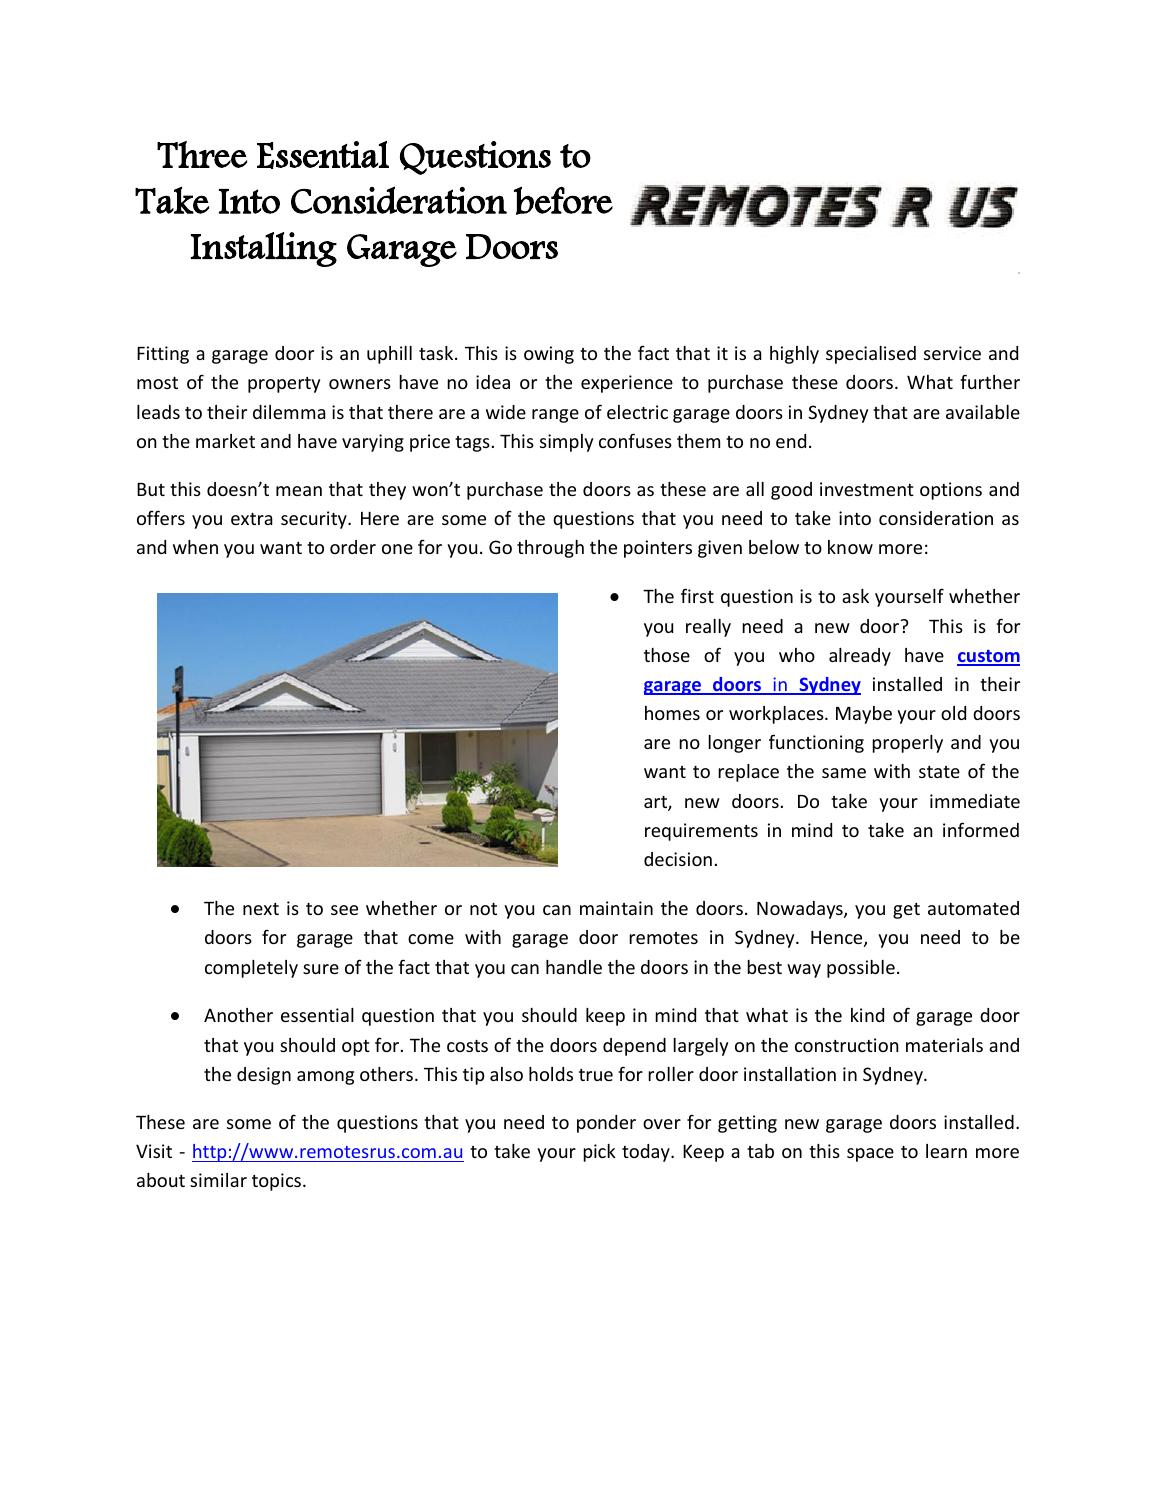 Three essential questions to take into consideration before three essential questions to take into consideration before installing garage doors by garagedoor issuu solutioingenieria Choice Image